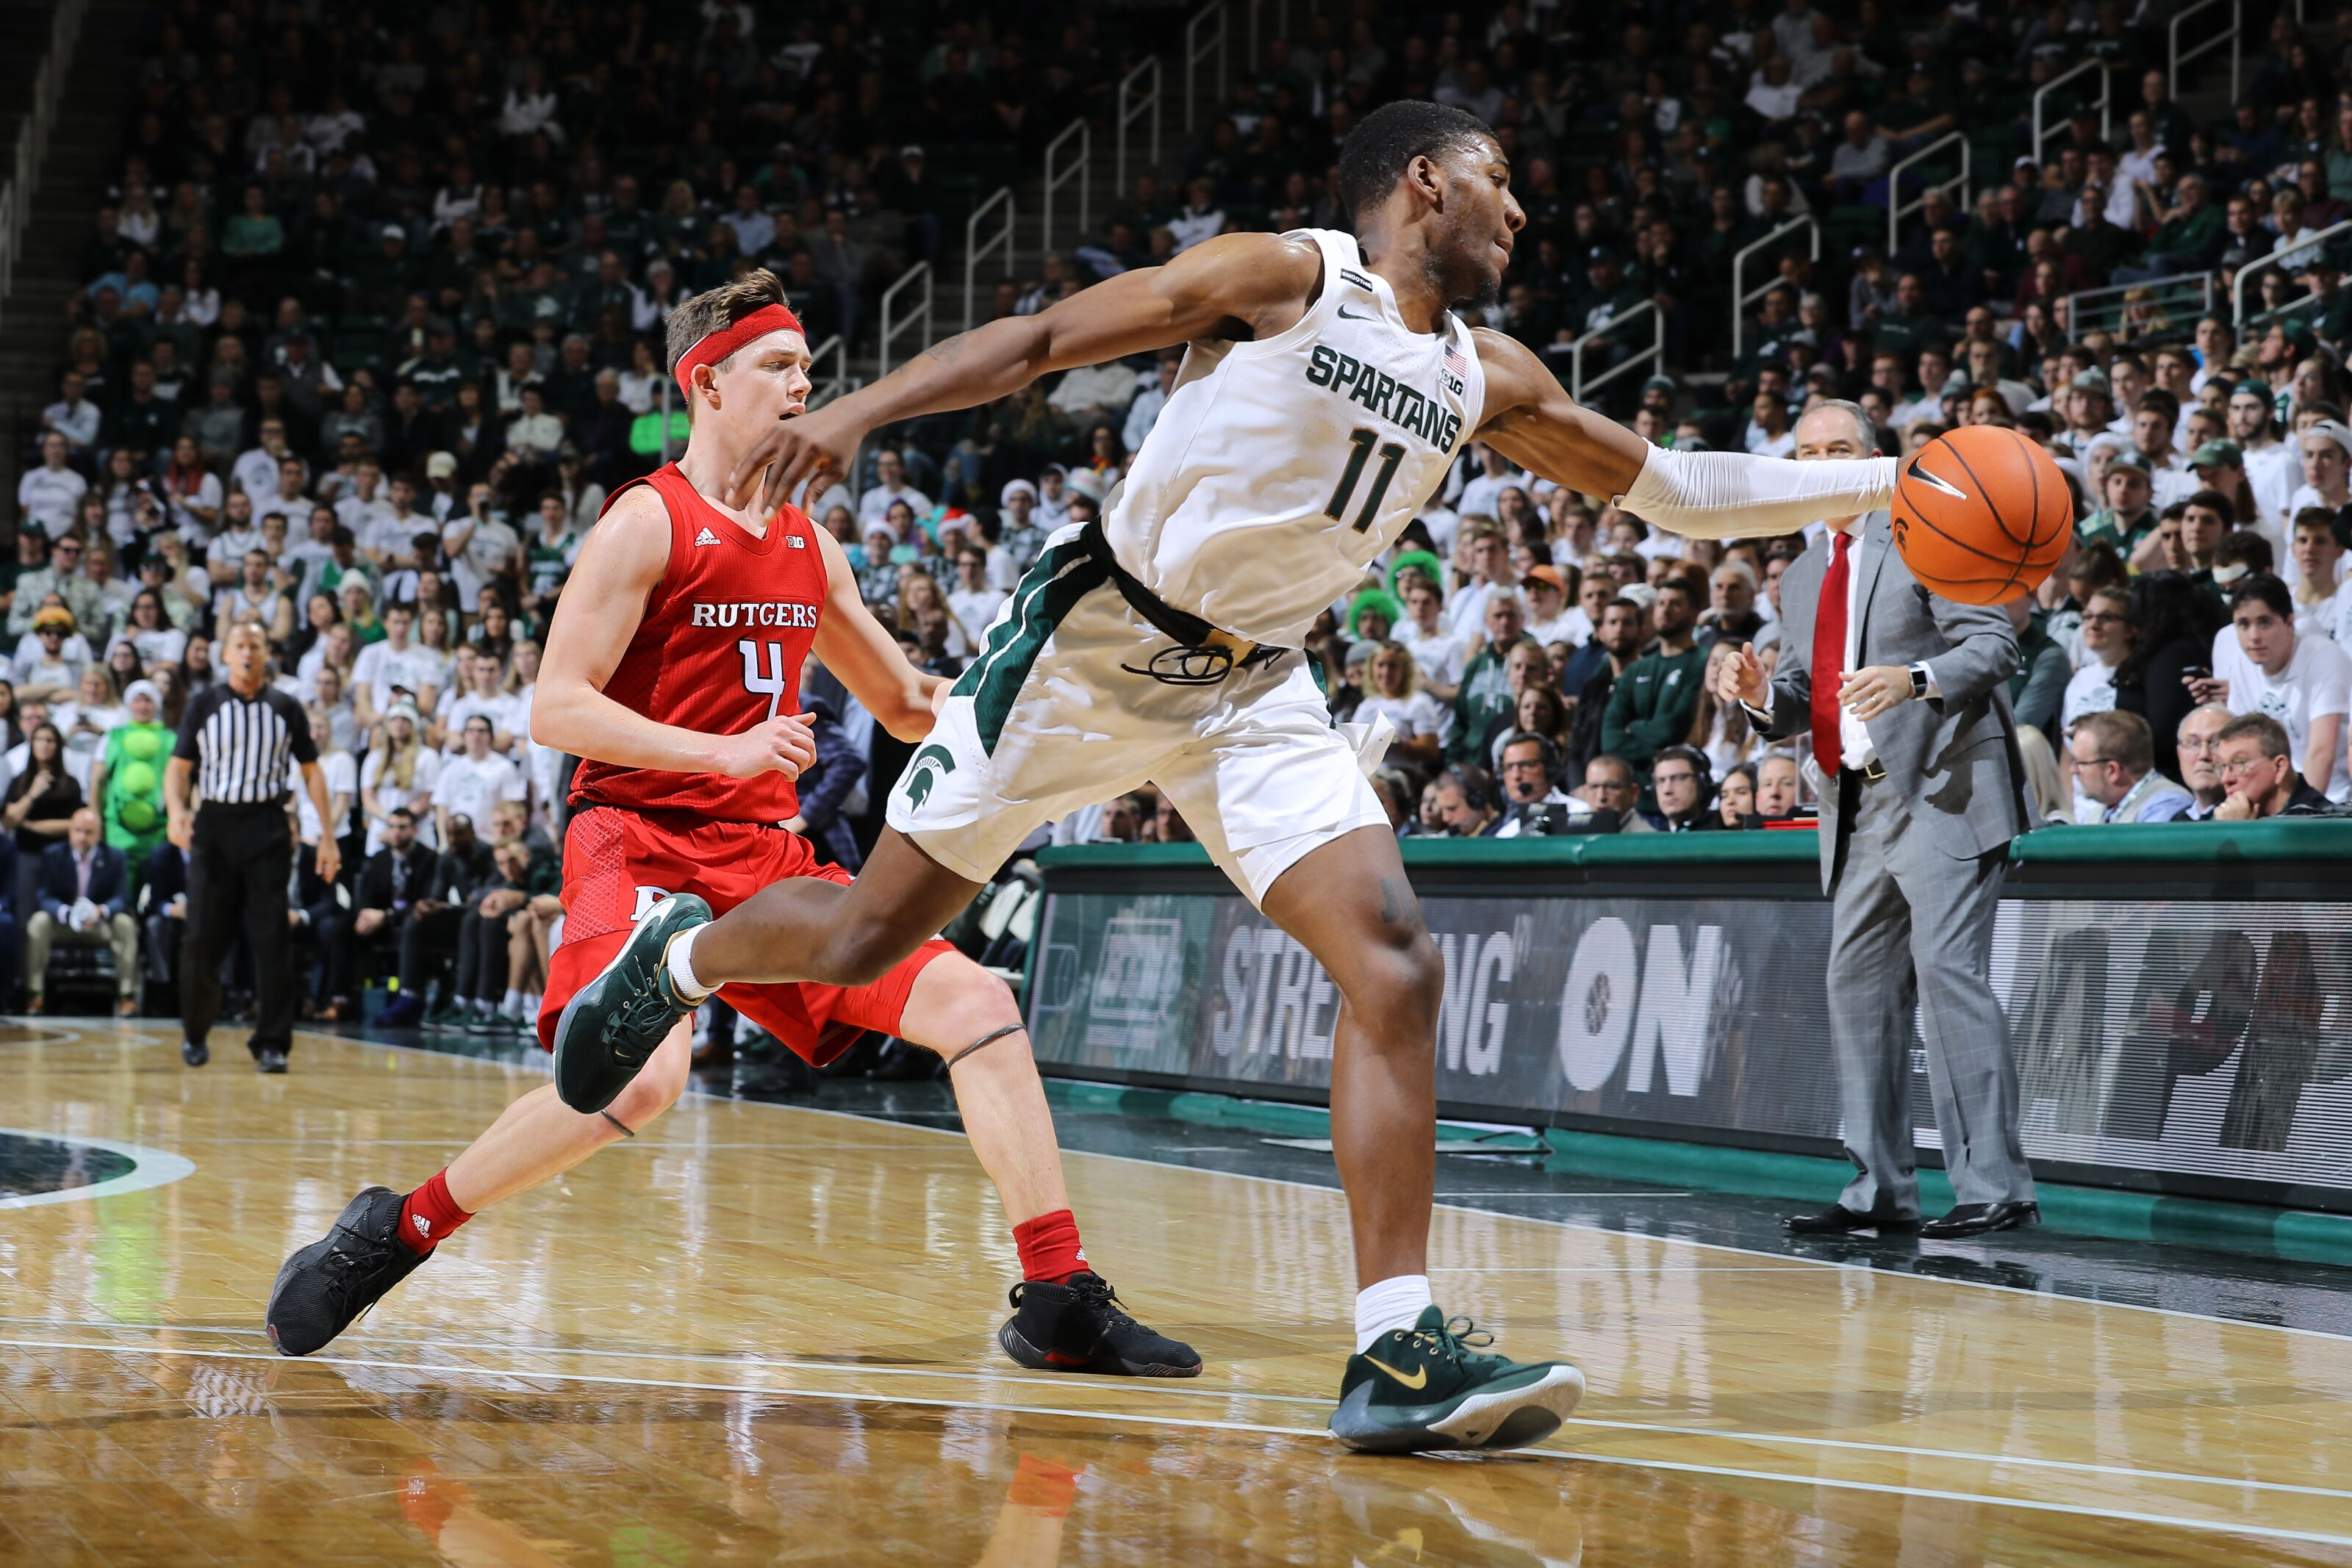 Michigan State Basketball: Report card for grind-it-out win vs. Rutgers